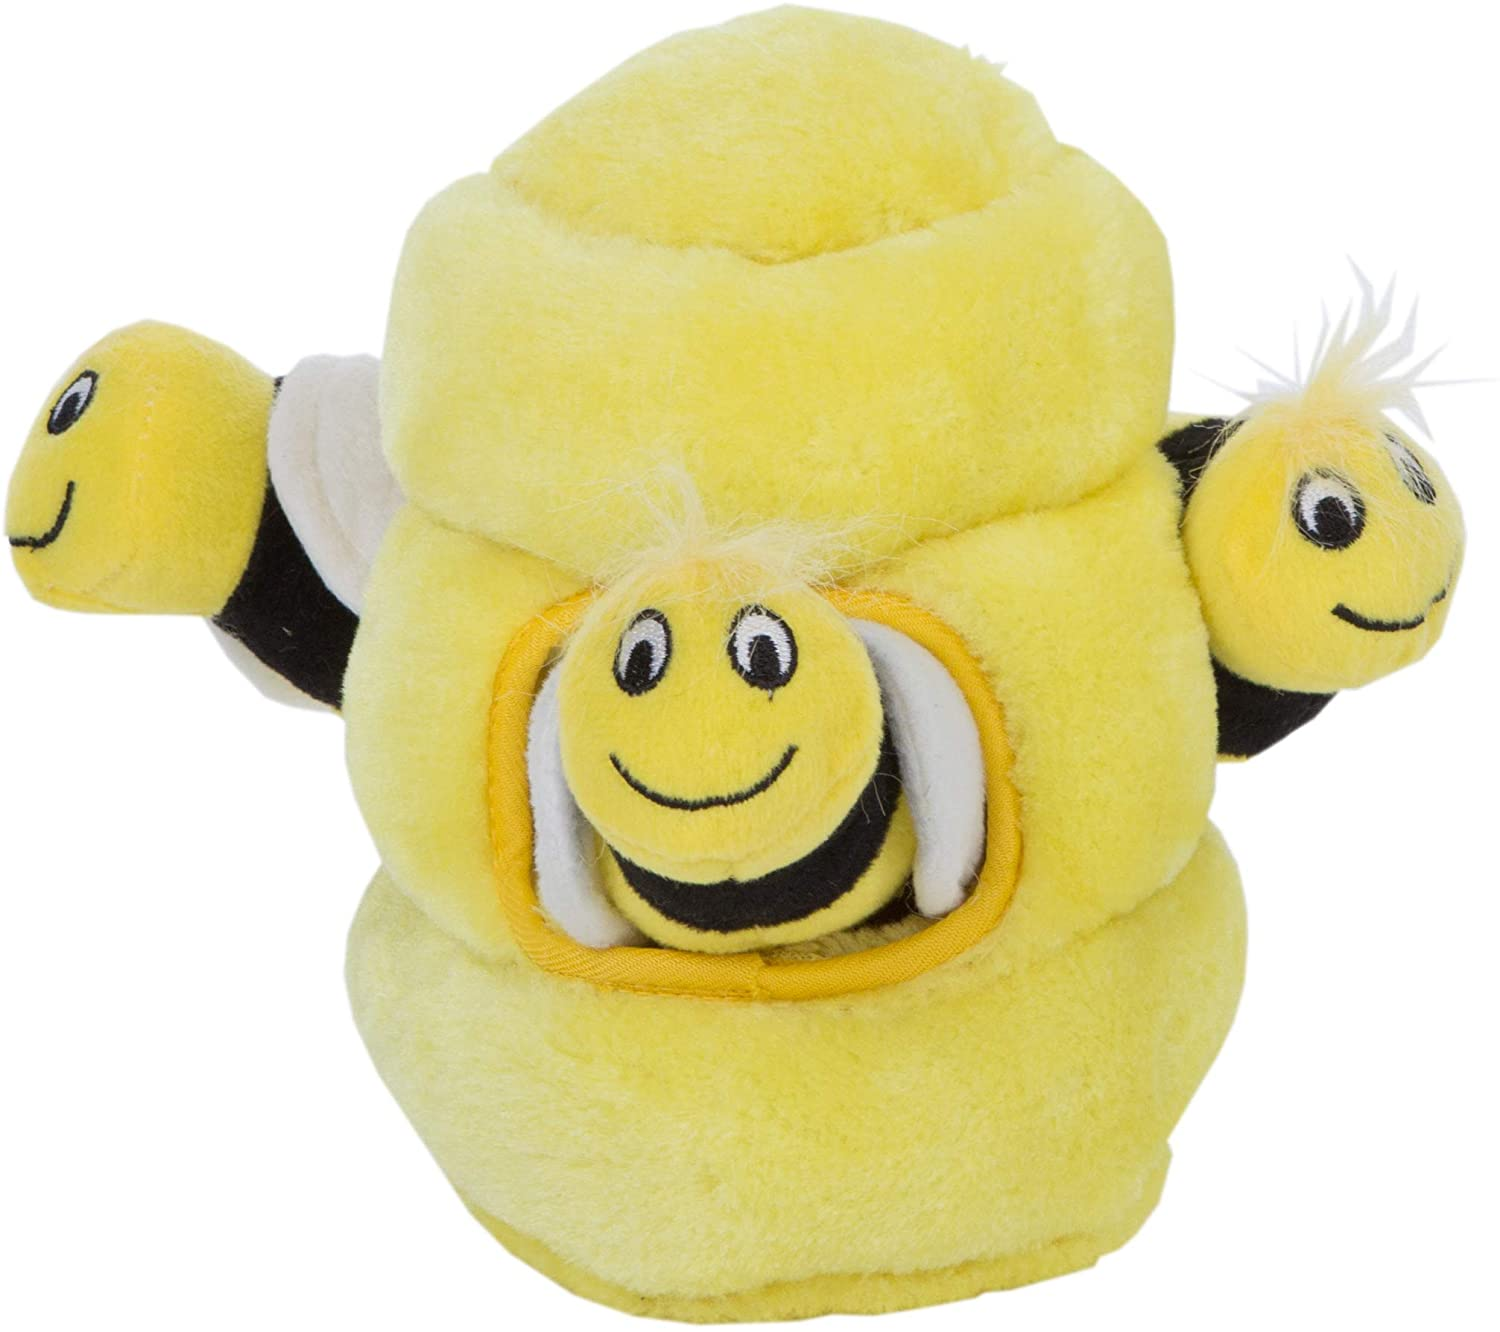 Outward Hound's mentally stimulating Hide a Bee dog puzzle toy